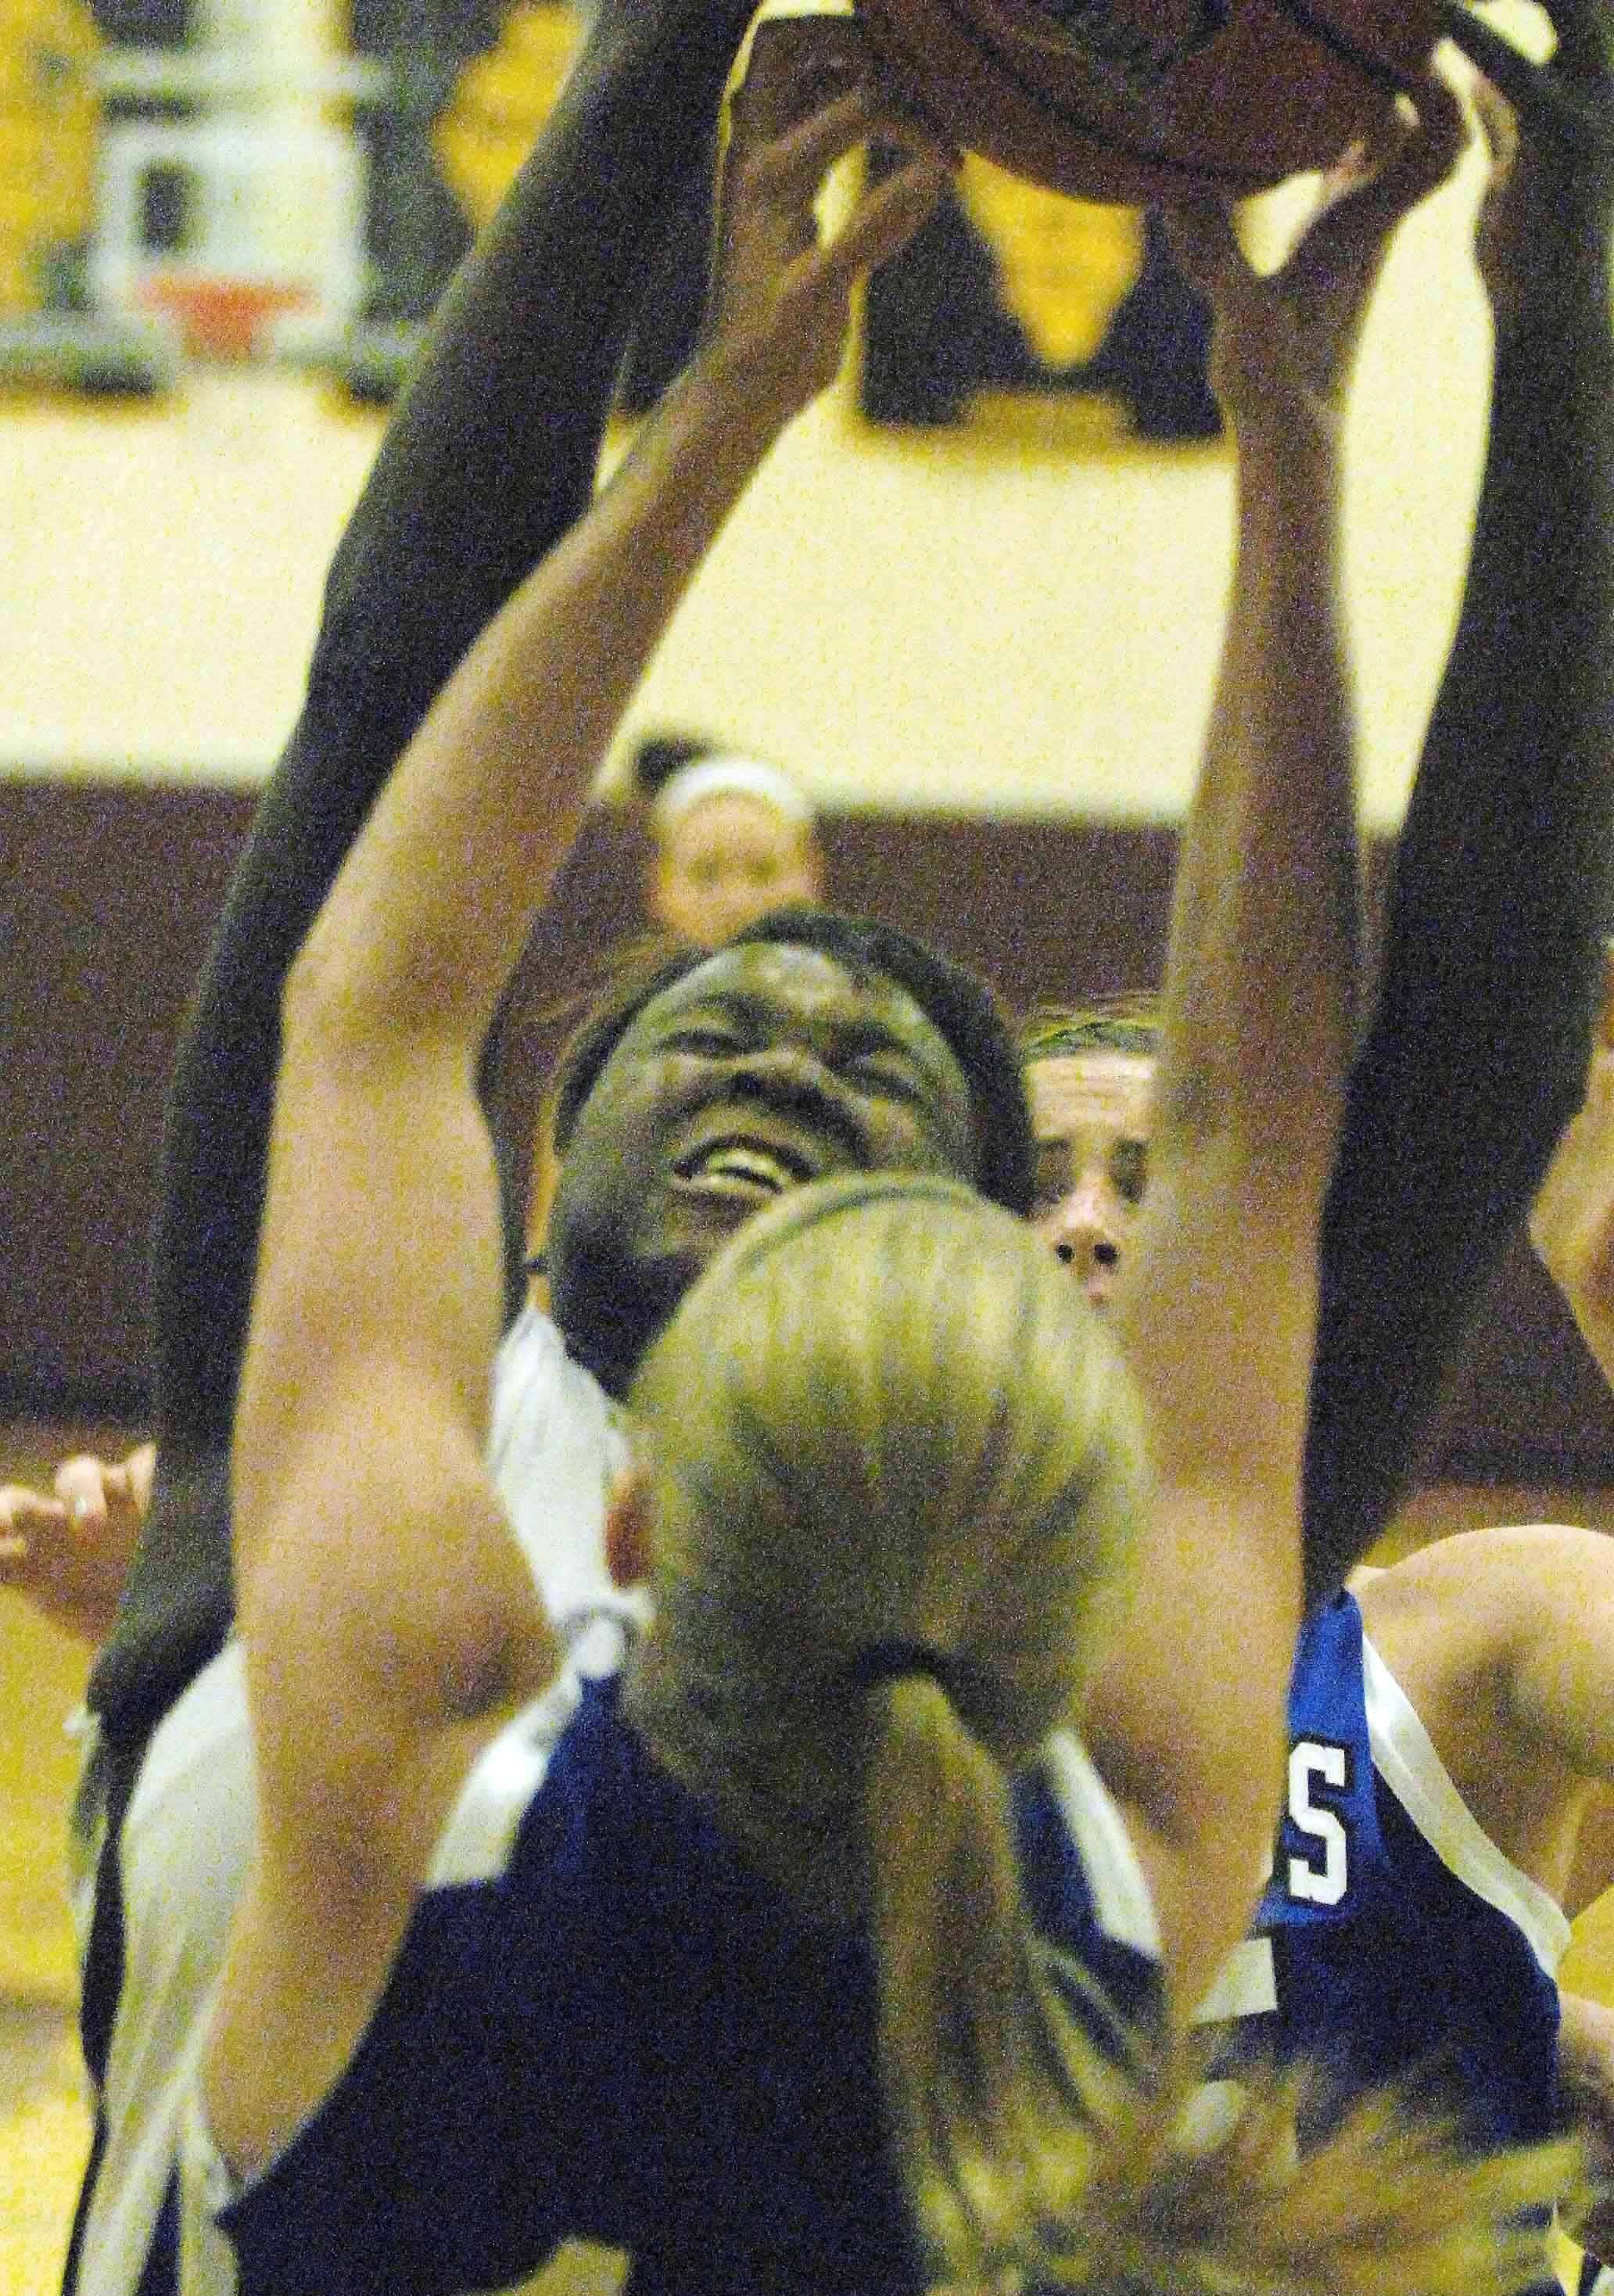 Tianna Brown of Montini fights off a Columbus defender for a rebound during the Montini vs. Columbus game at Montini Tuesday.